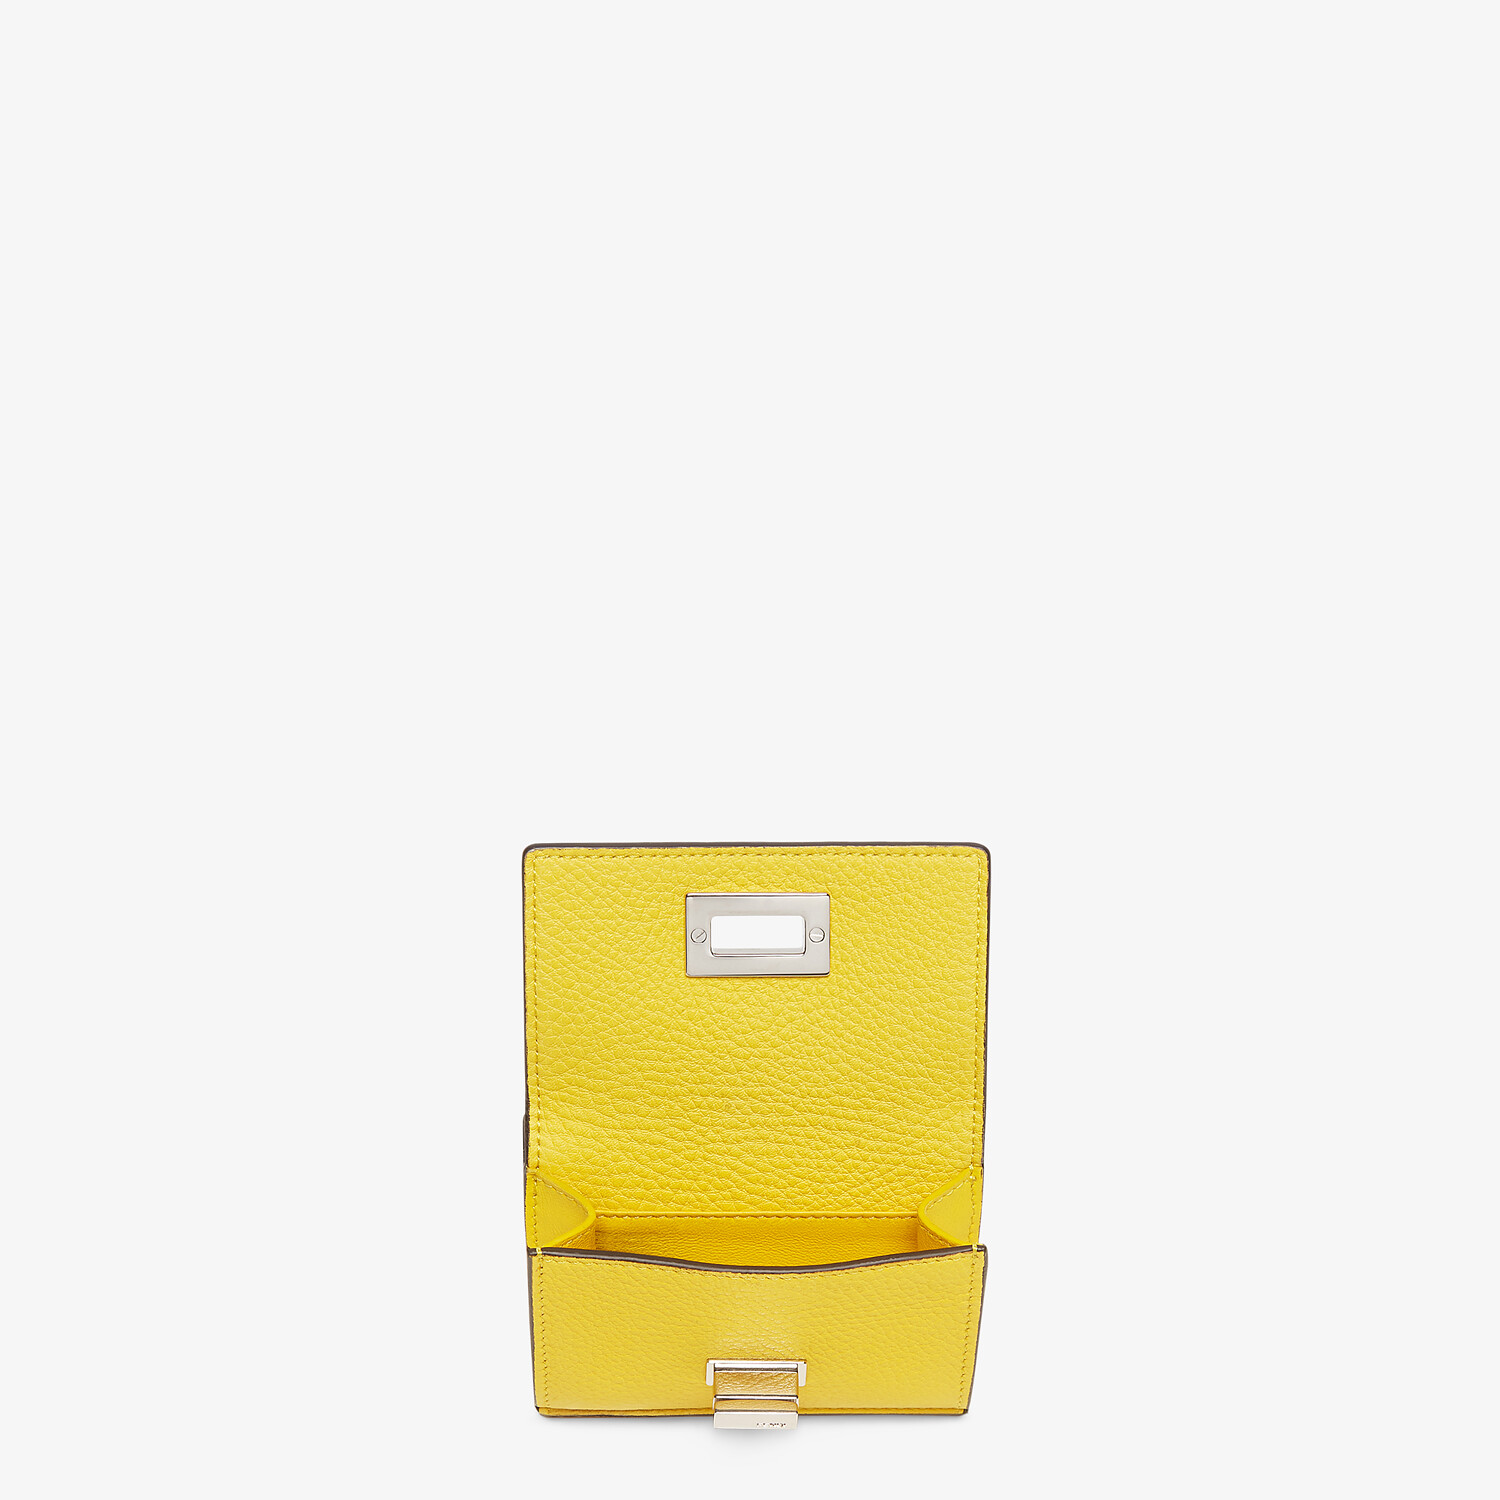 FENDI MICRO TRIFOLD - Yellow leather wallet - view 3 detail